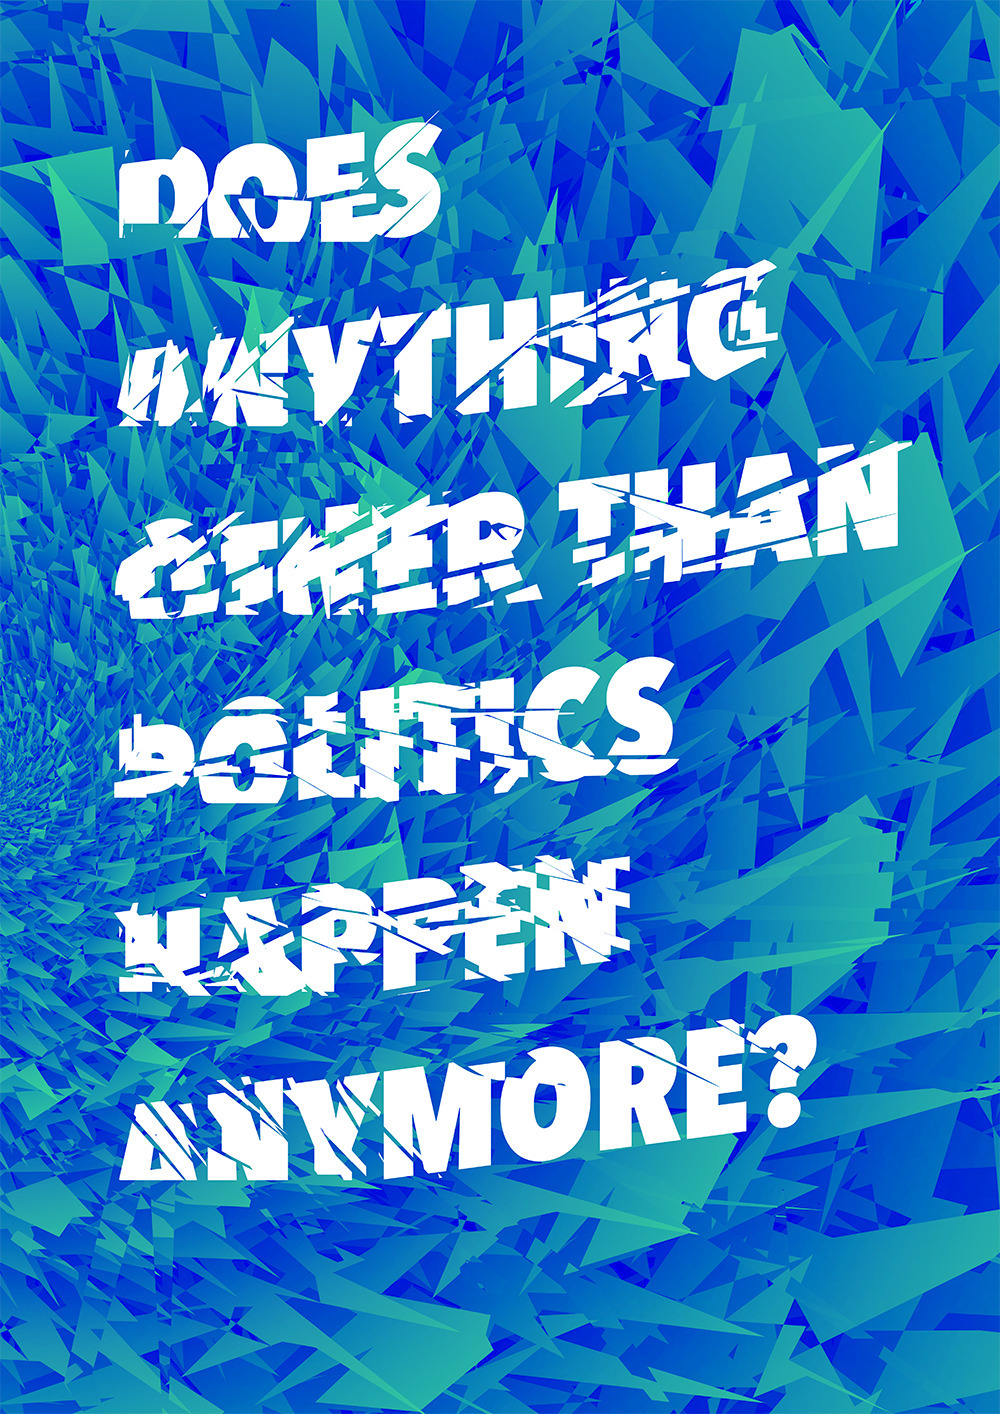 politics happen anymore? 9 - 365 - theradya | ello